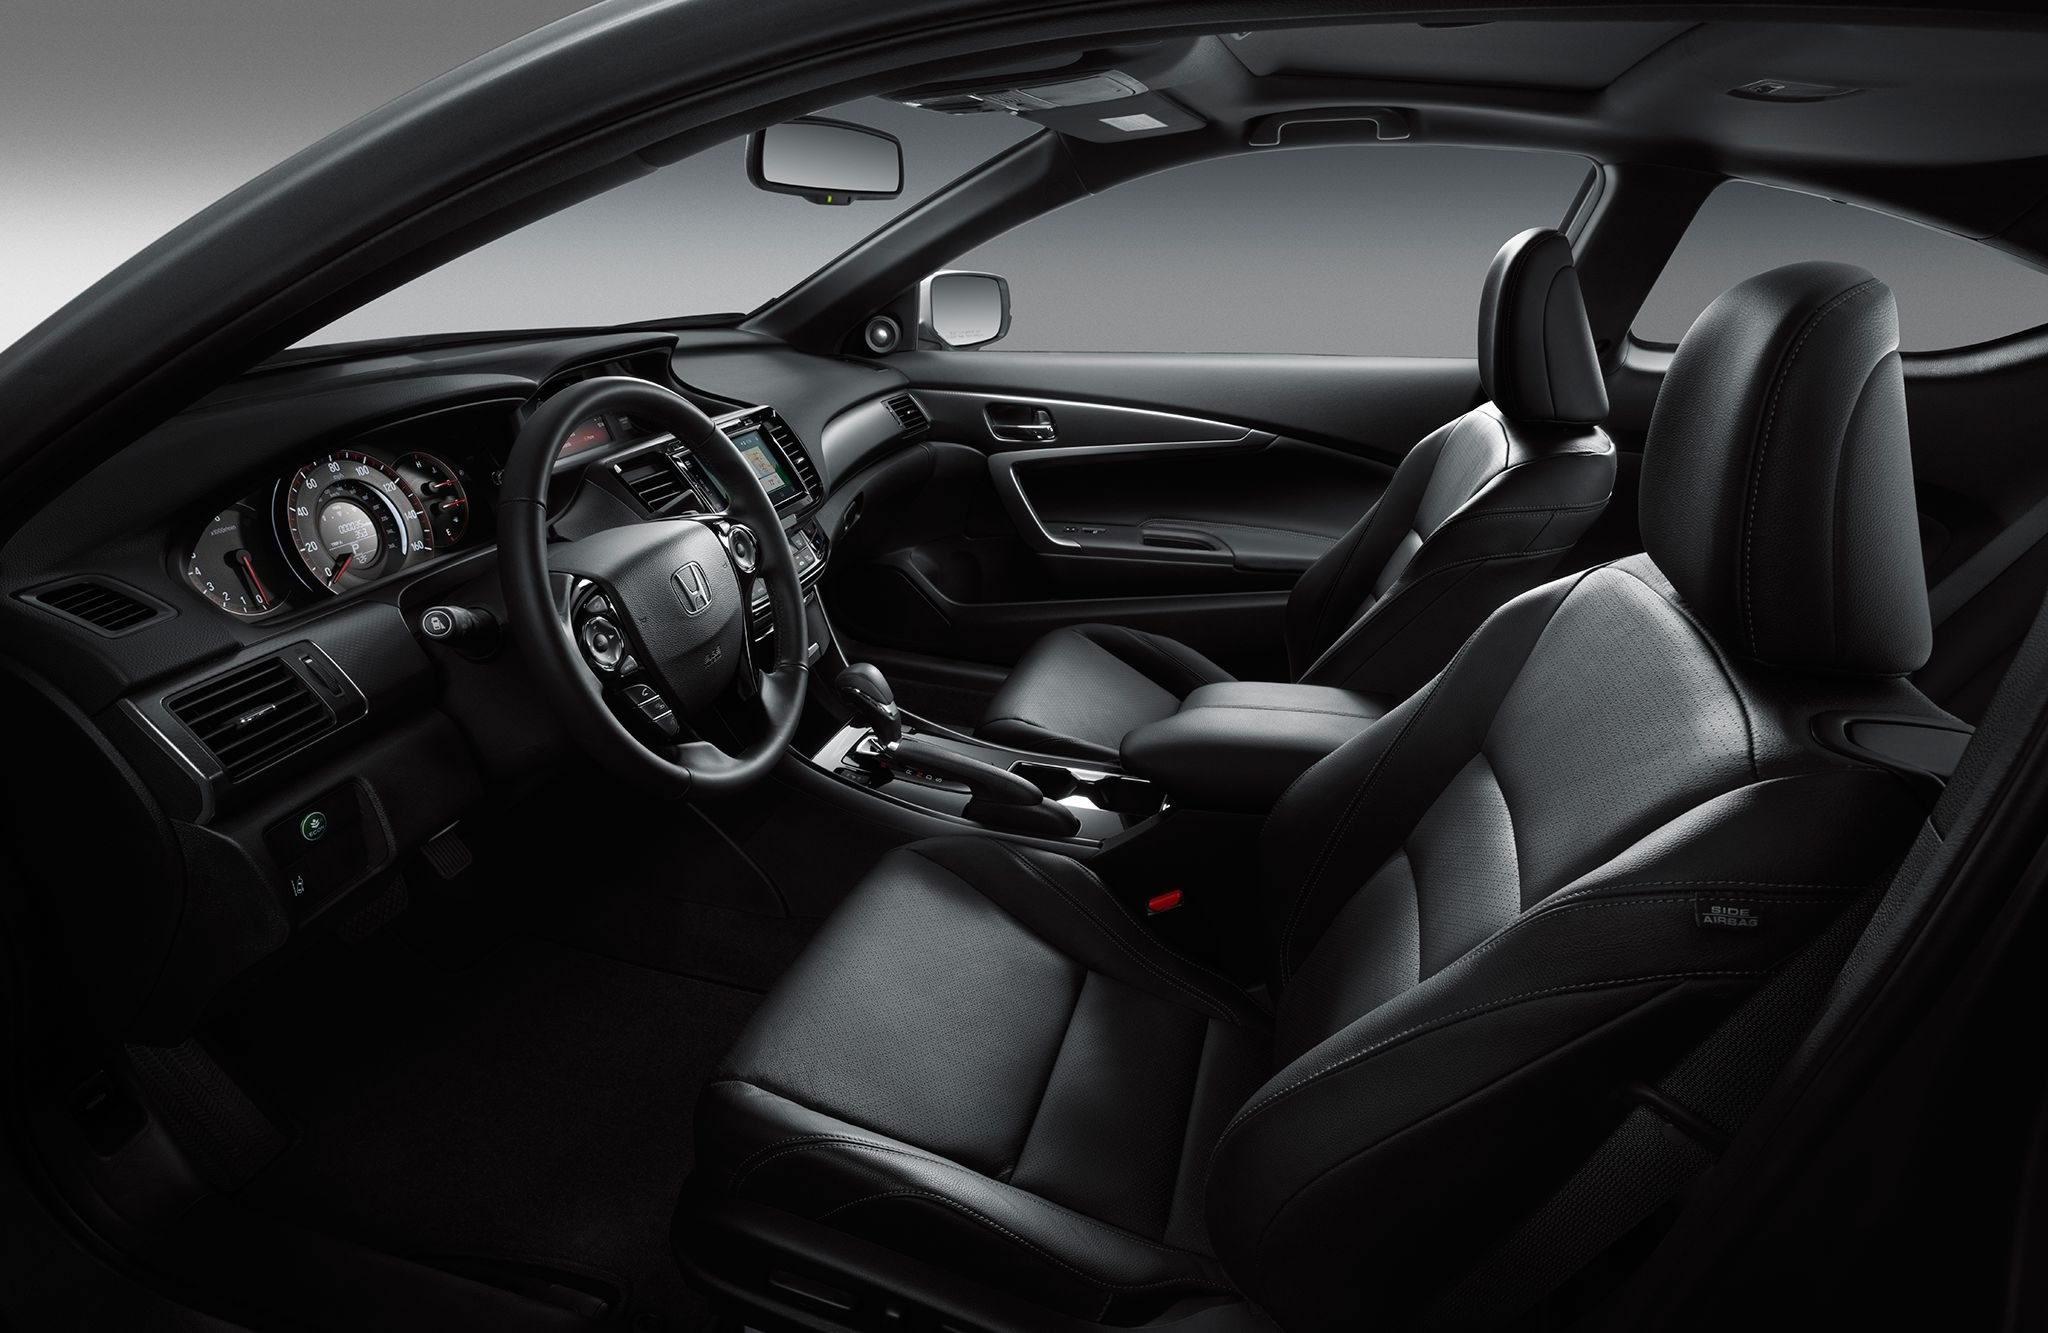 2017 Honda Accord Coupe Interior Seating and Dash